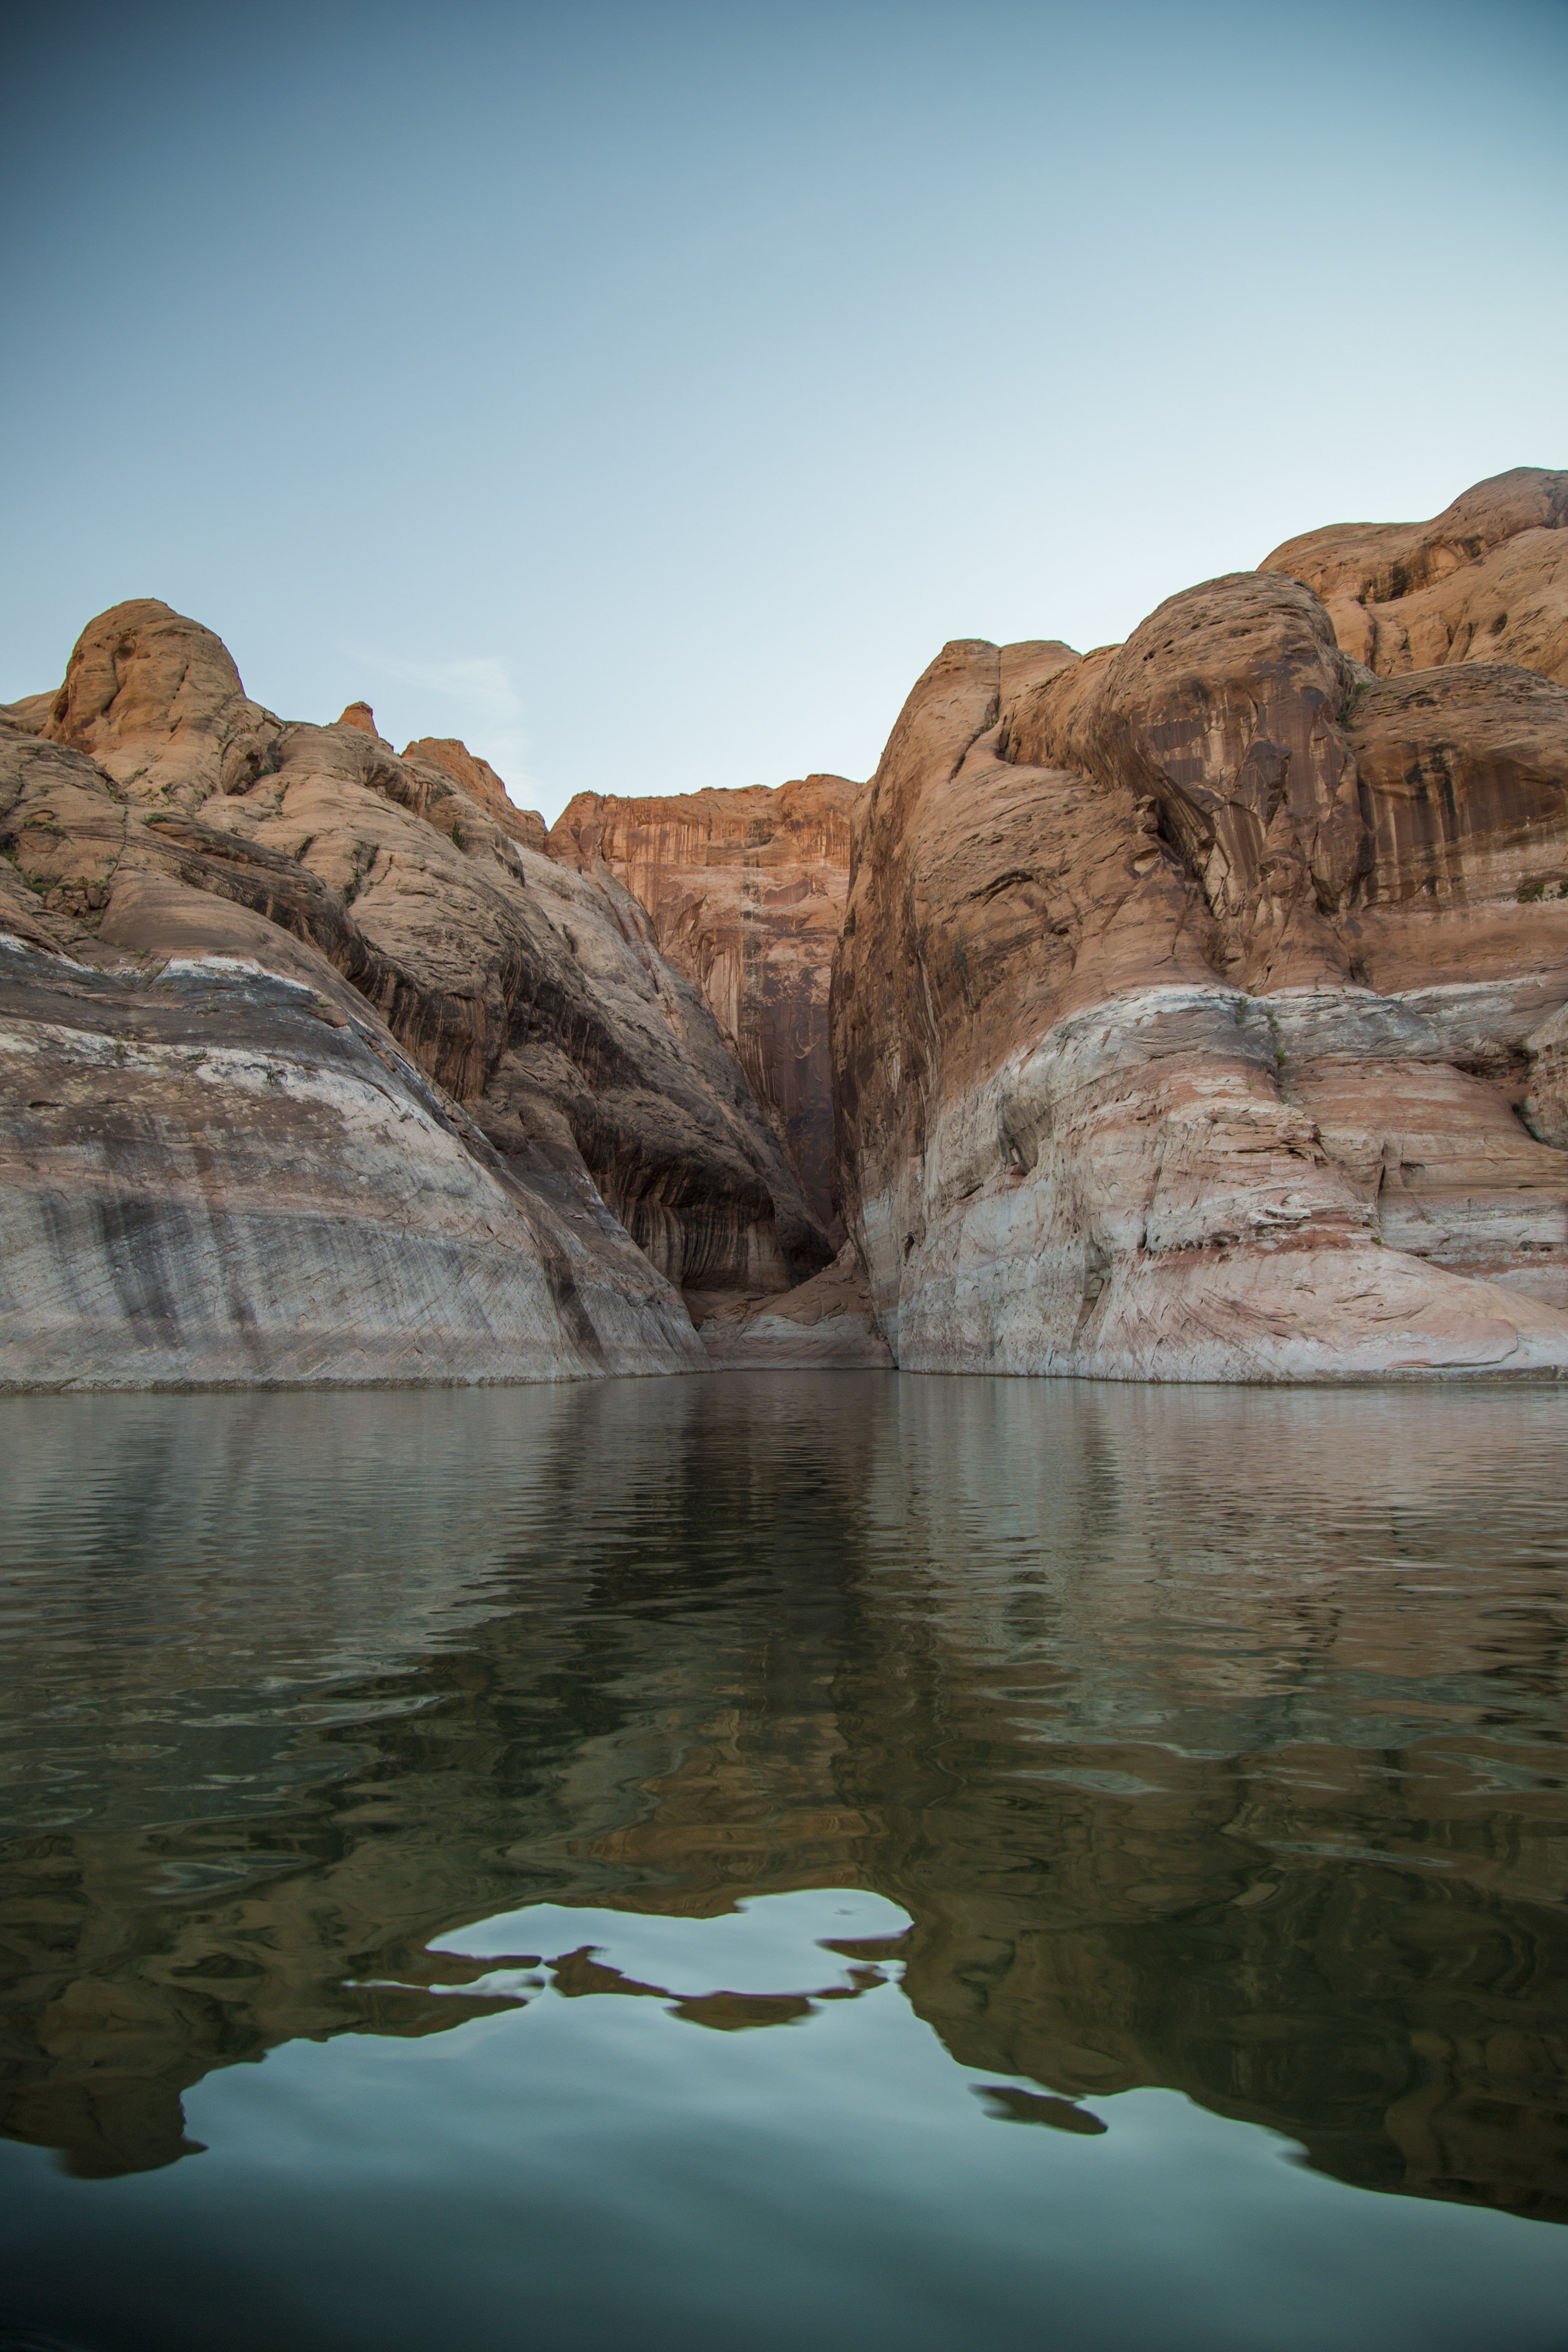 Afternoon - Lake Powell